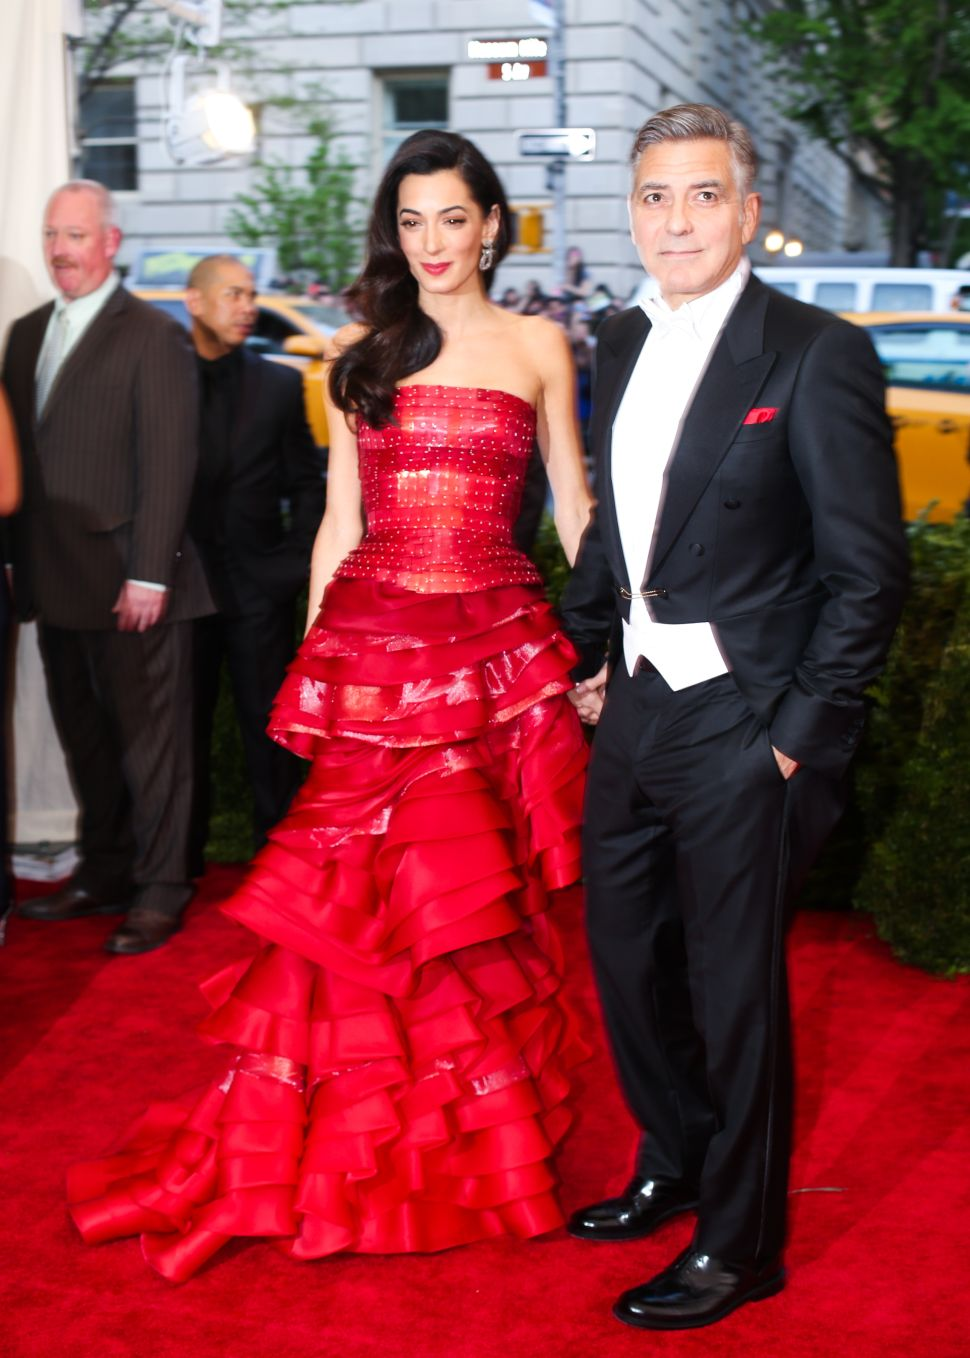 Met Gala Gossip and Exclusives as Stars Chat With the Observer